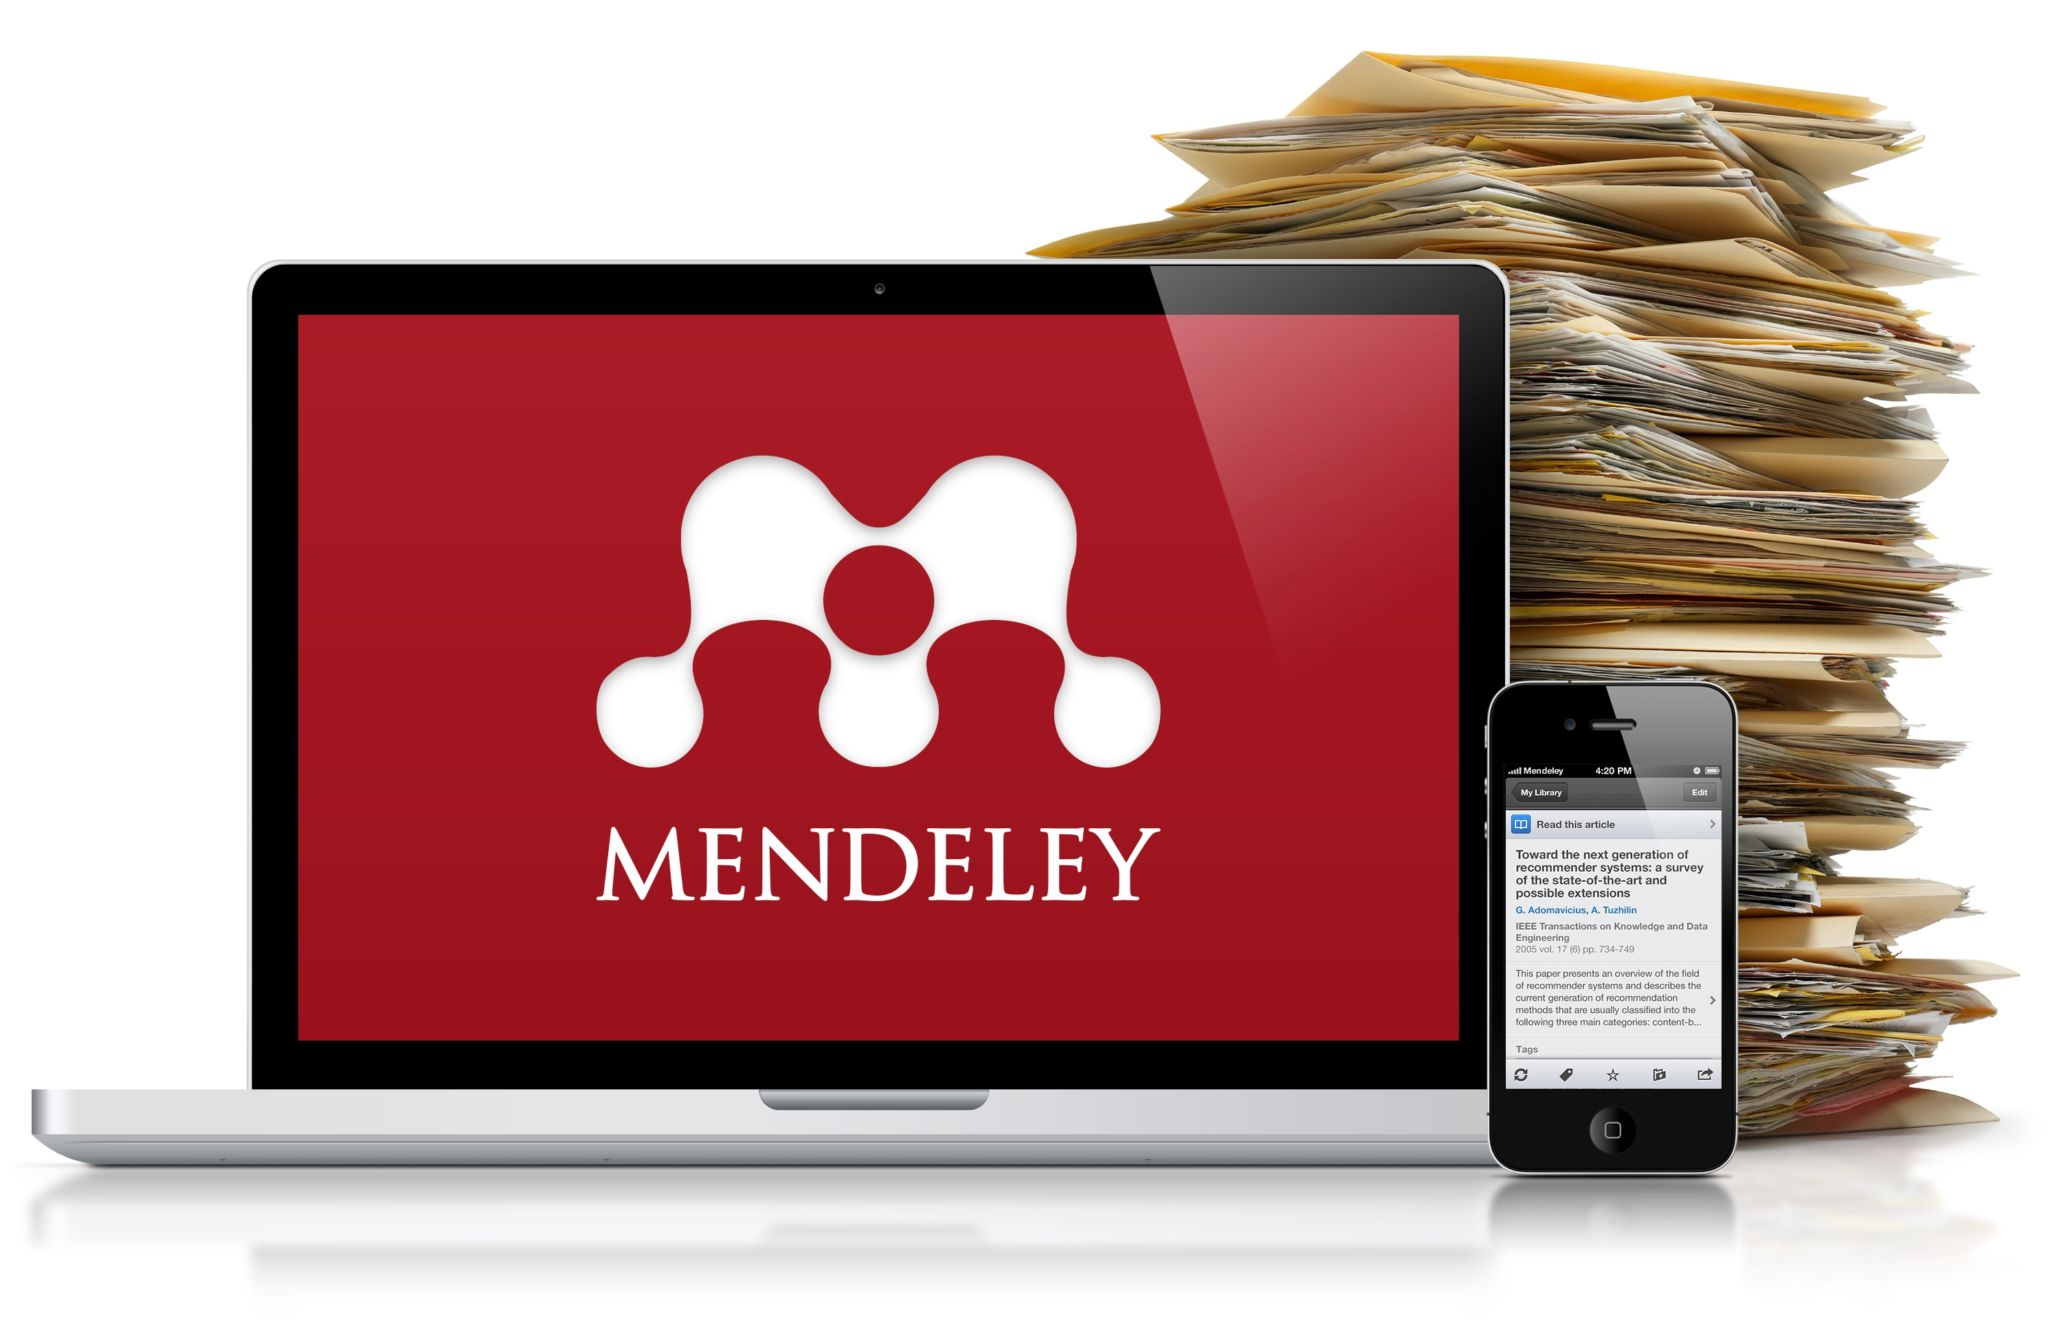 I Refer To Mendeley As A Service, Rather Than A Product, Since It Provides  You With So Many Features Like Zotero, It Is A Reference Manager